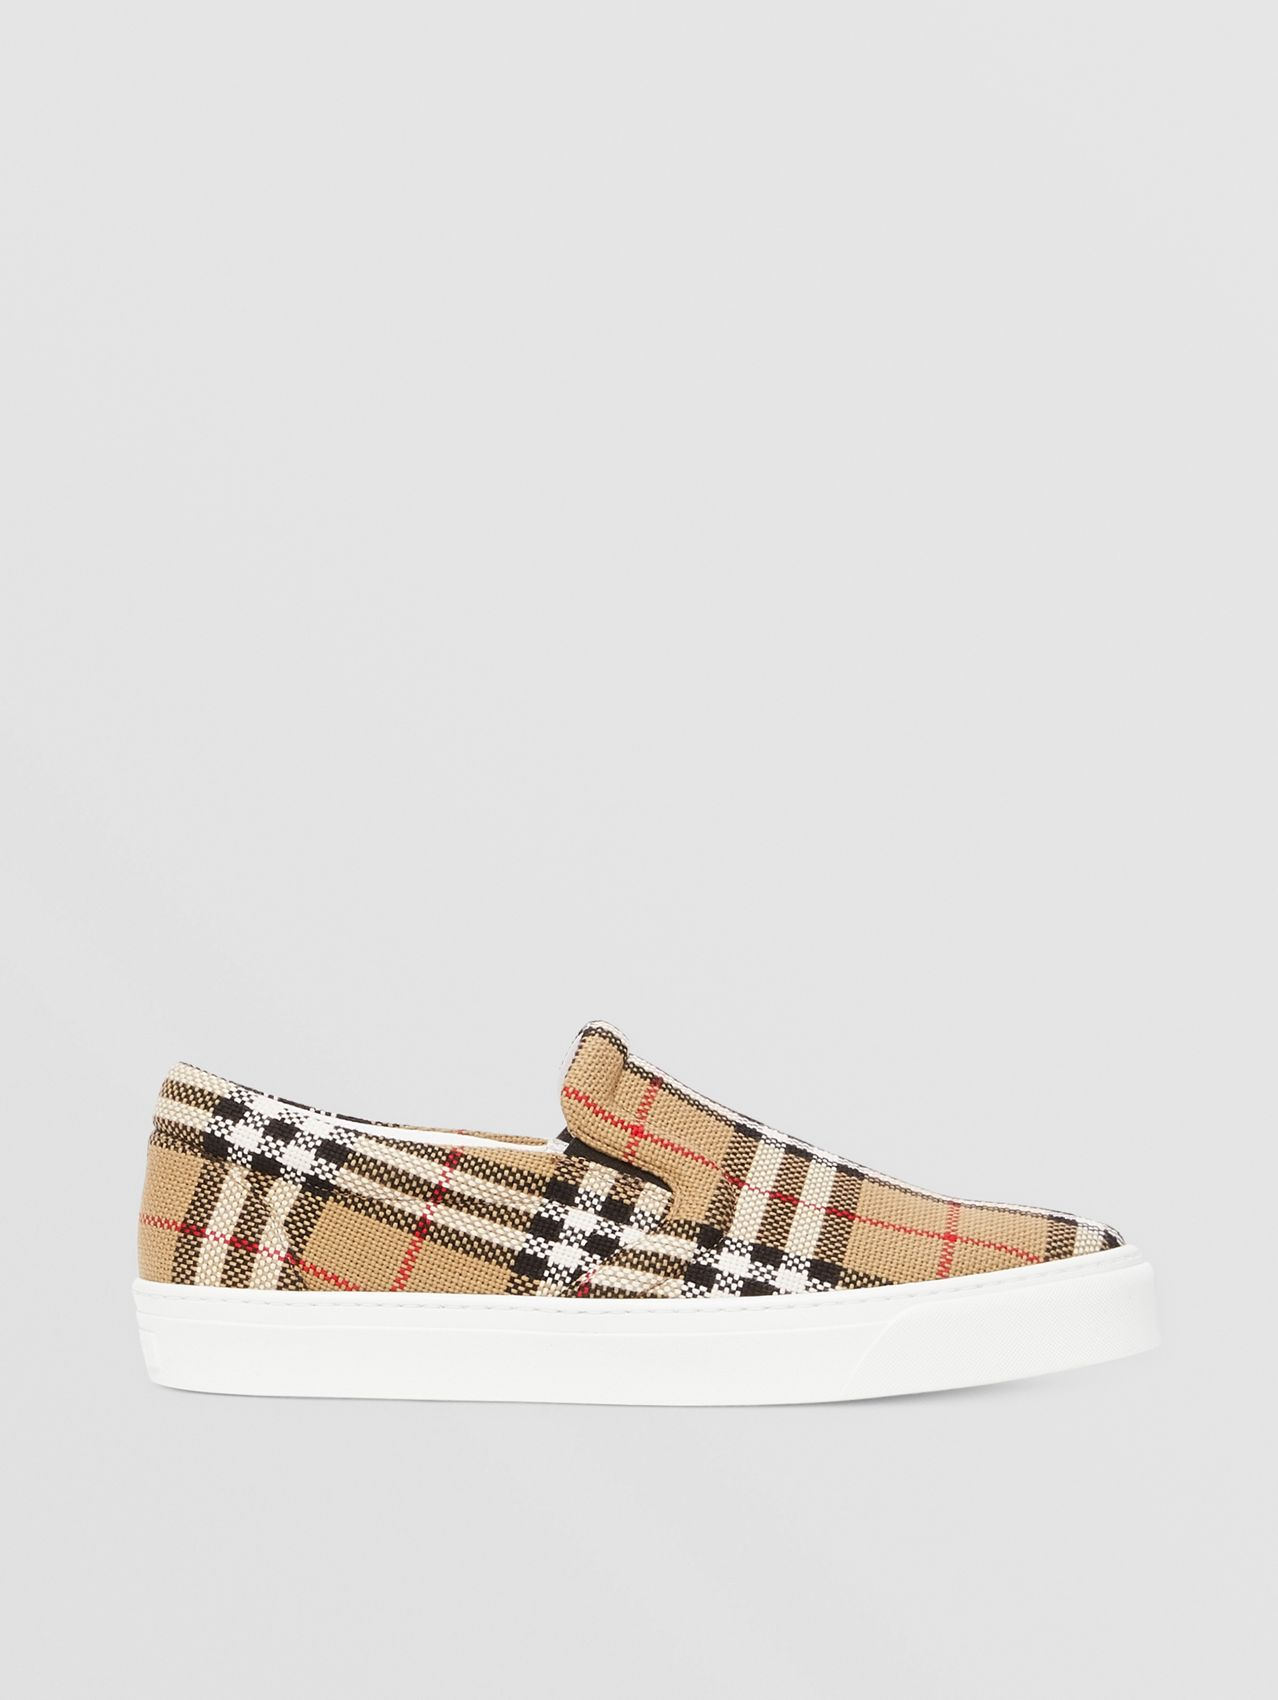 Latticed Cotton Slip-on Sneakers (Archive Beige)